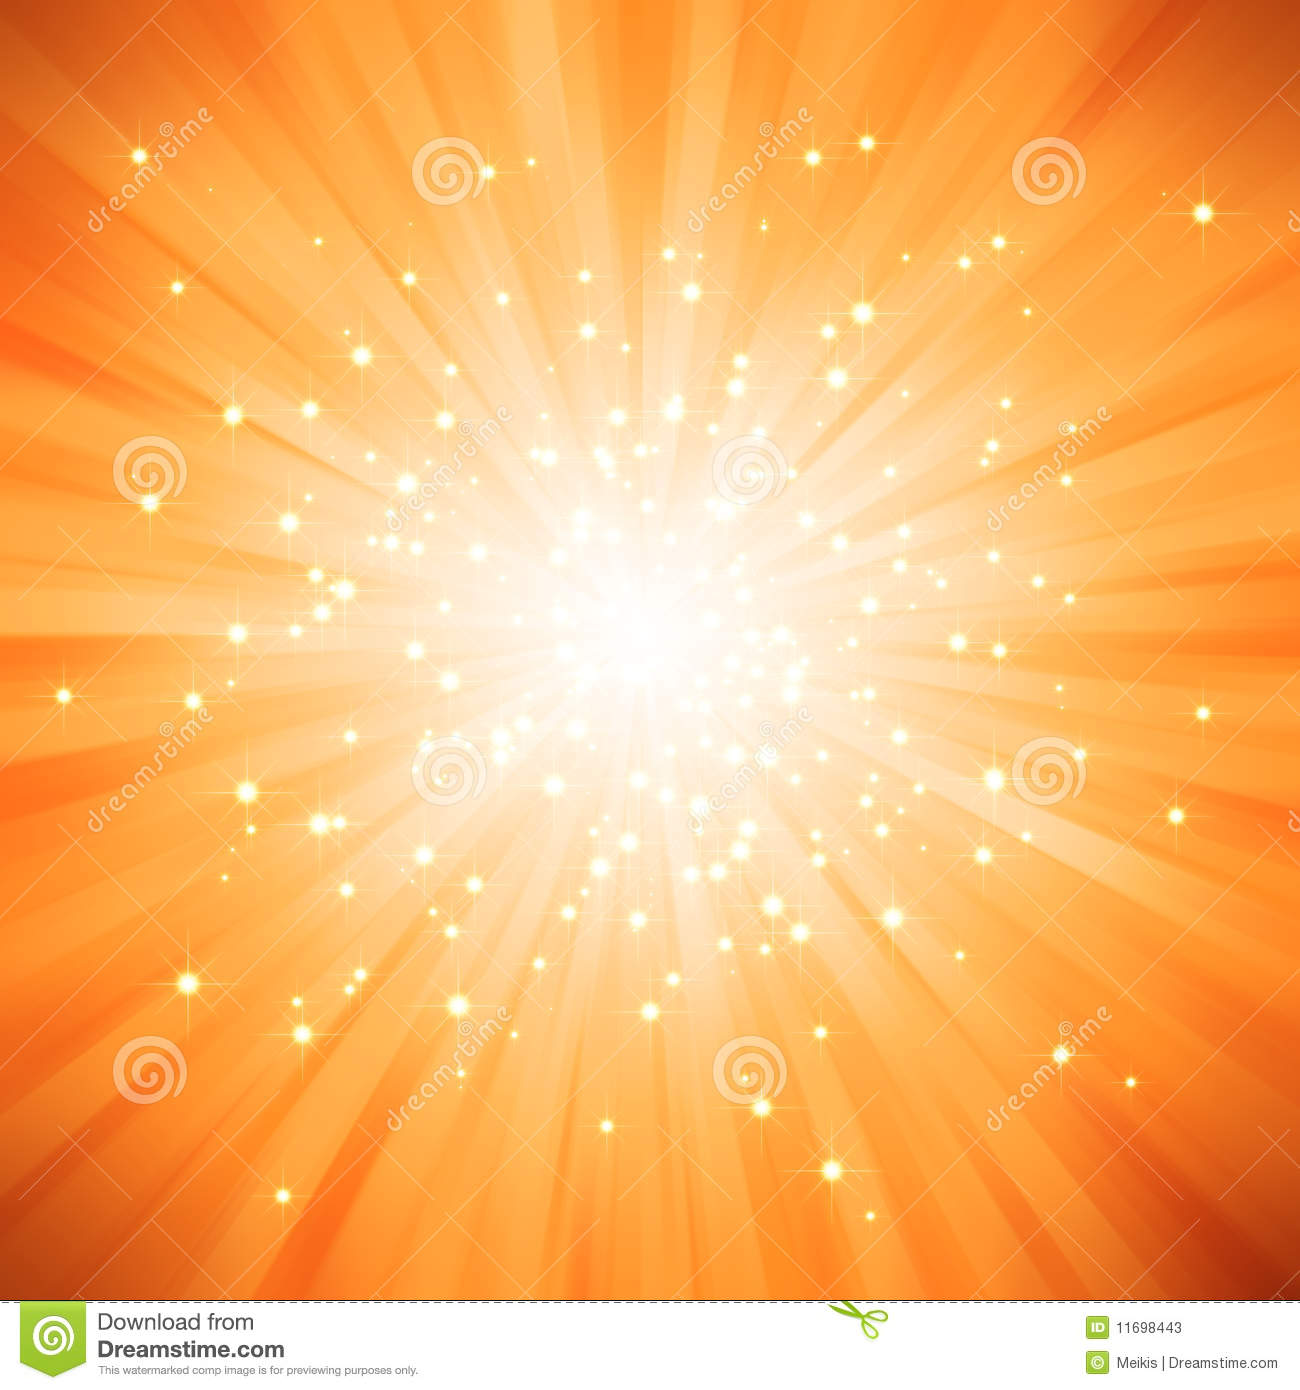 Orange Golden Light Burst With Stars Stock Illustration ...